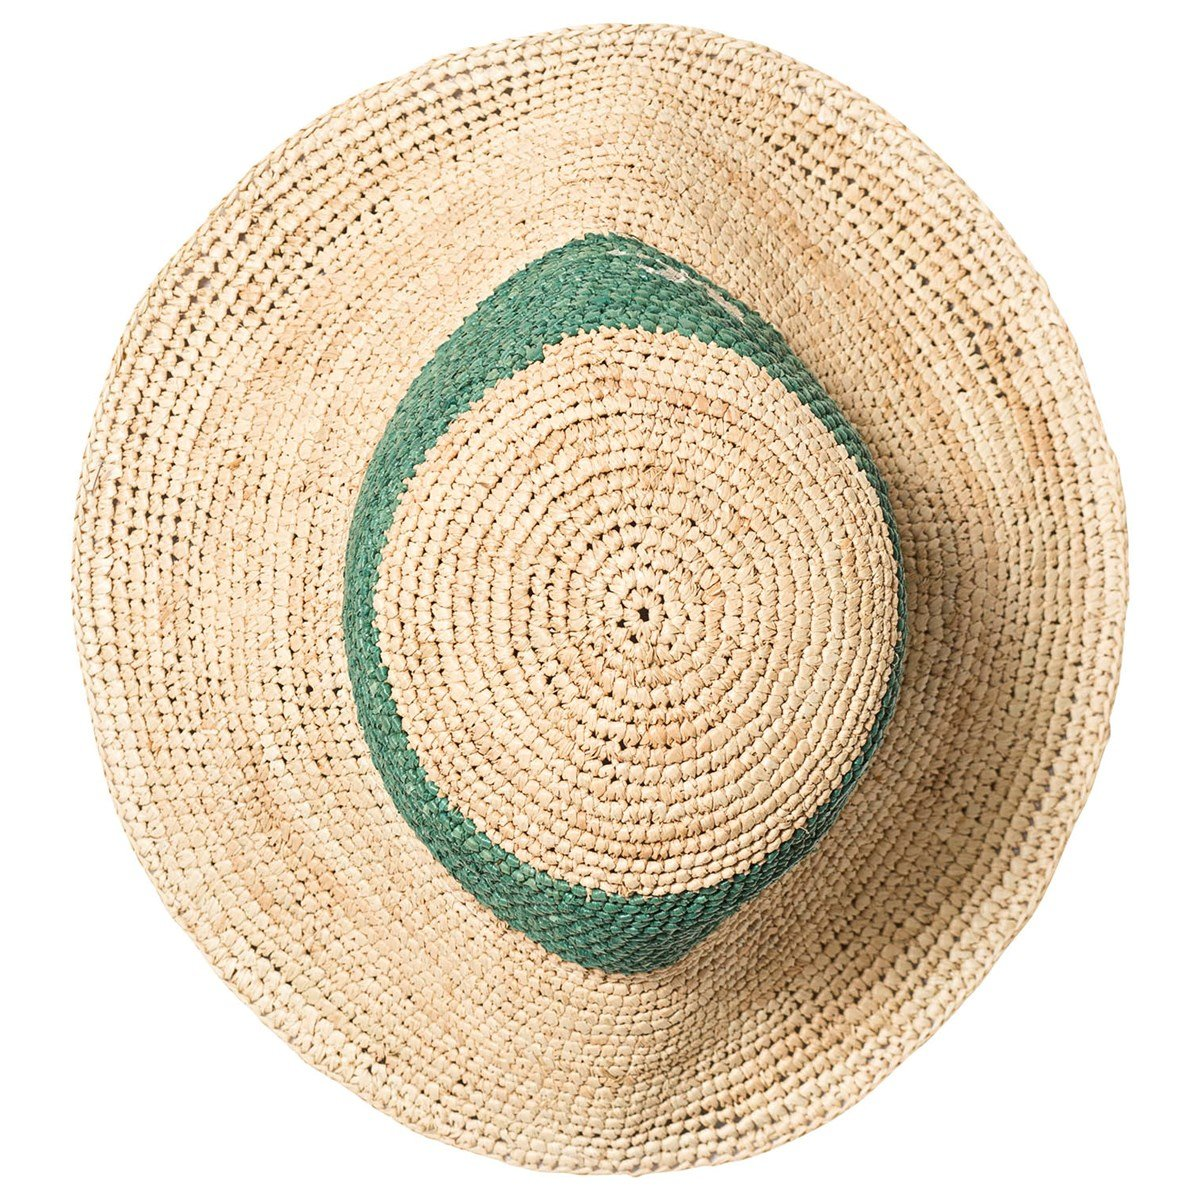 60f2b9a59 Bobo Choses Beige & Green B.C. Wicker Hat | AlexandAlexa